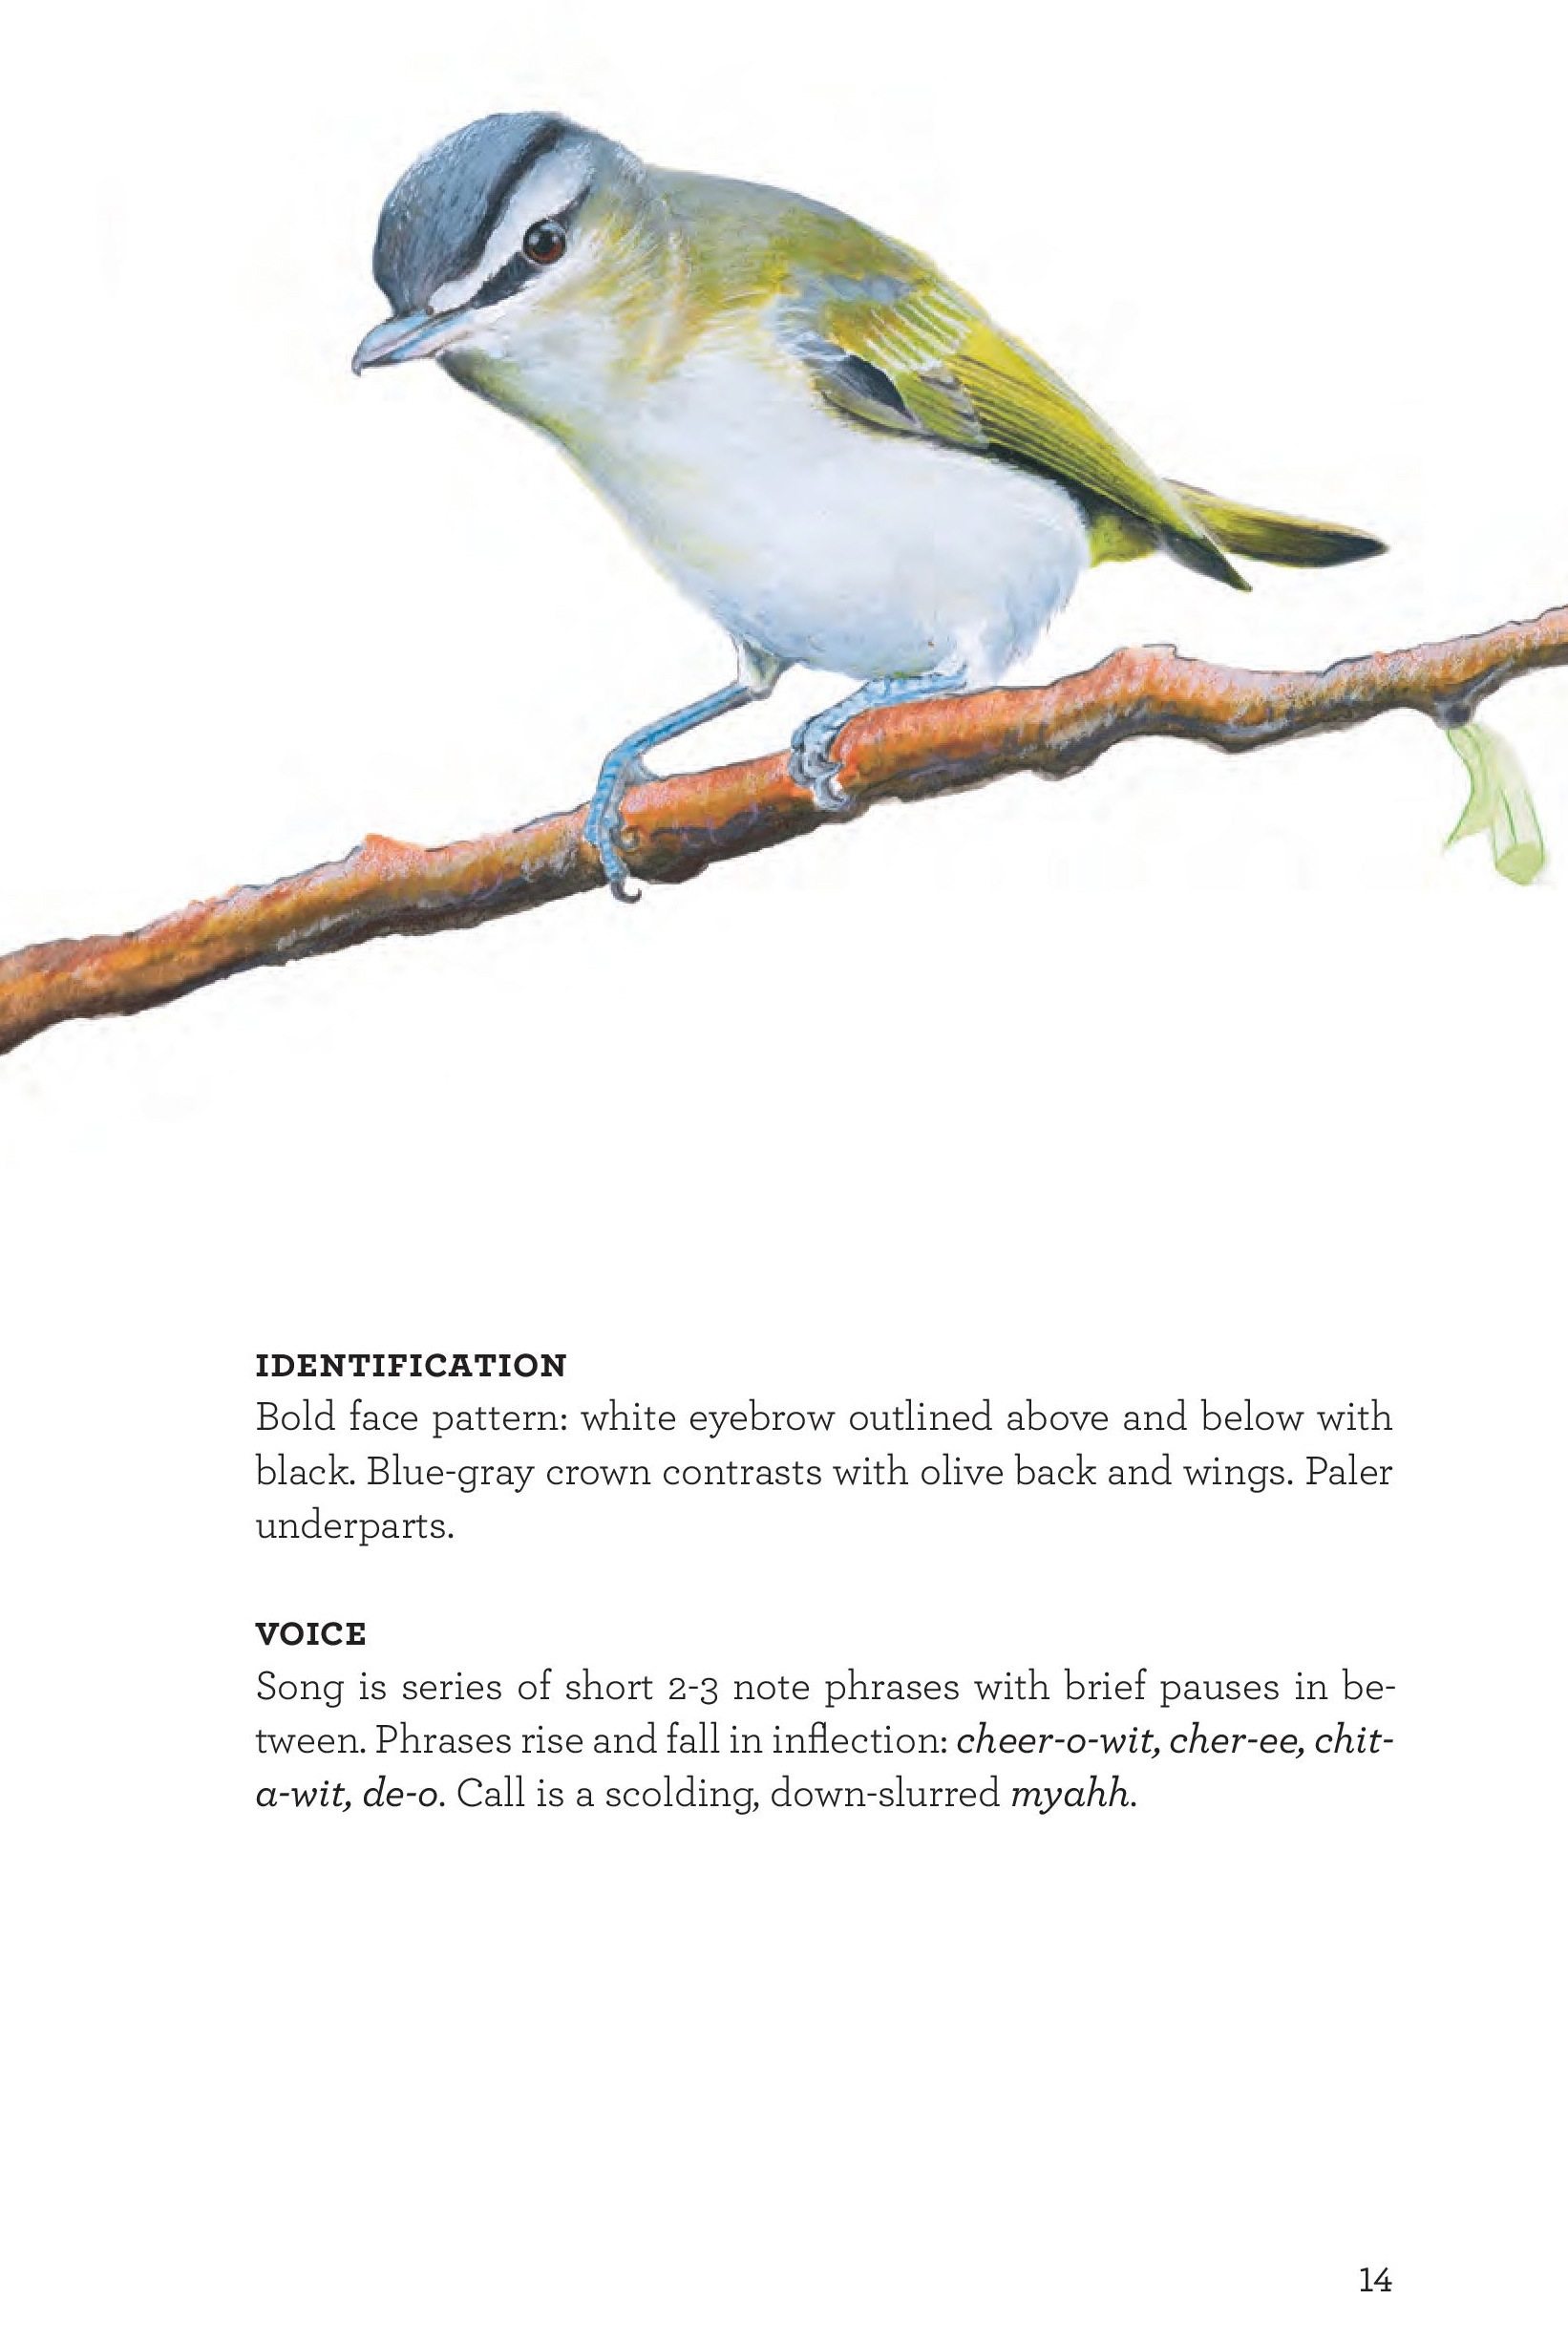 James_FieldGuide_Text screen lores (3)-page-017.jpg